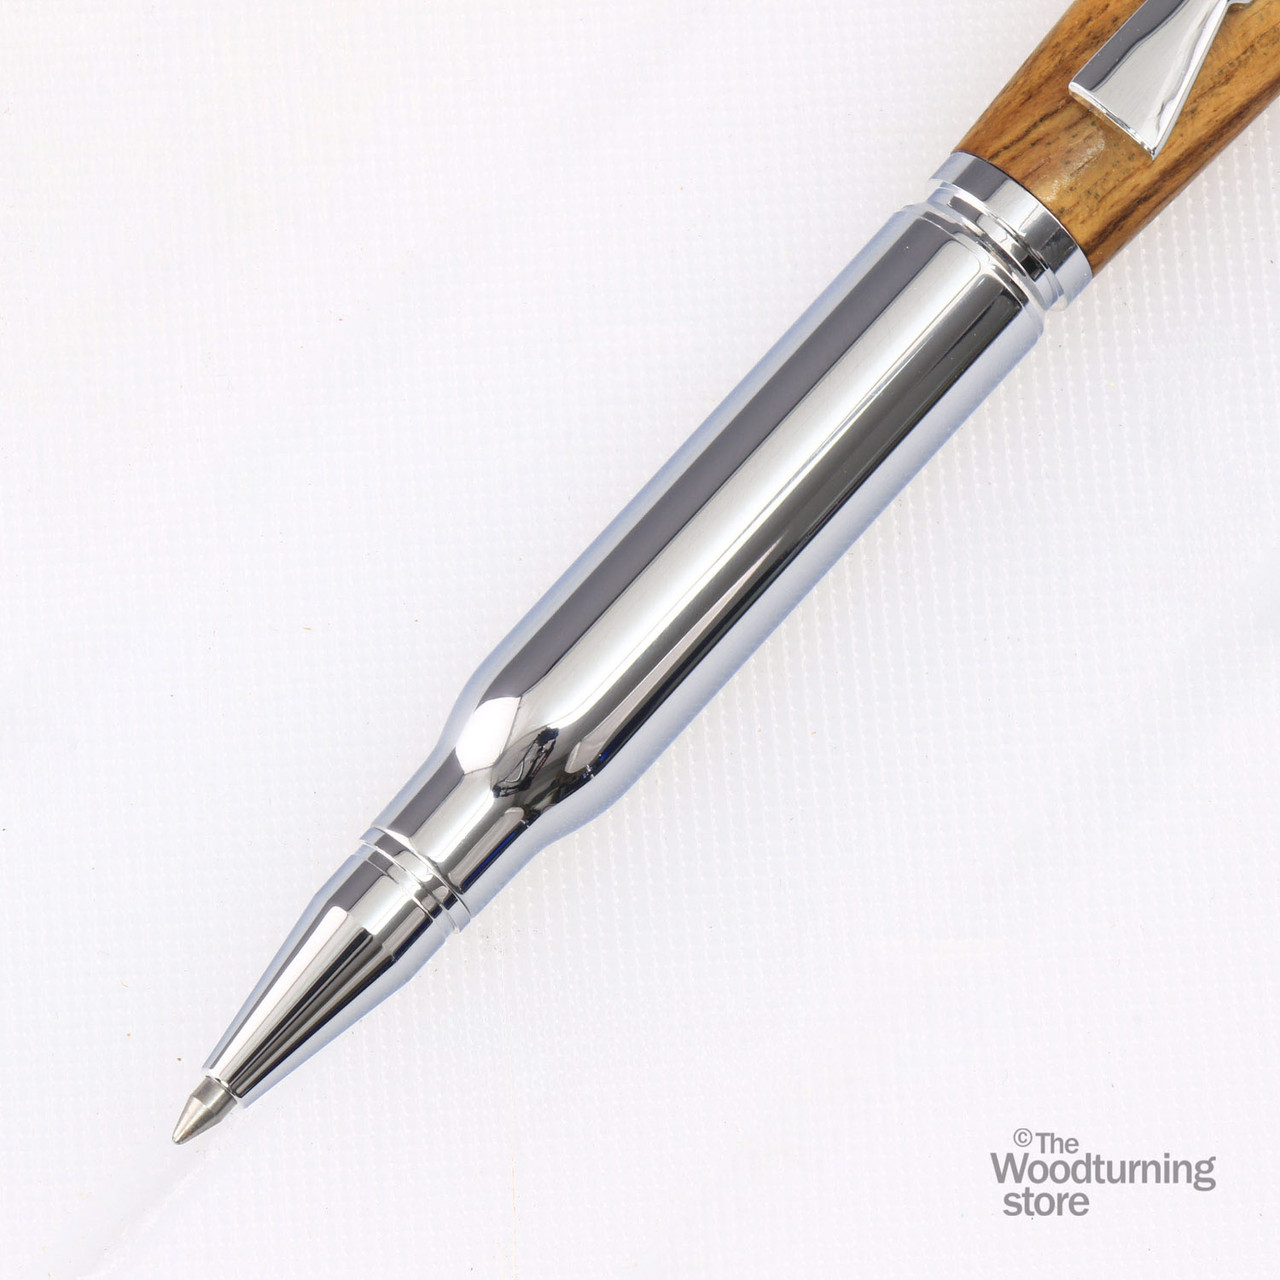 Bullet Click Pen with Rifle Clip Woodturning Kits Two Chrome